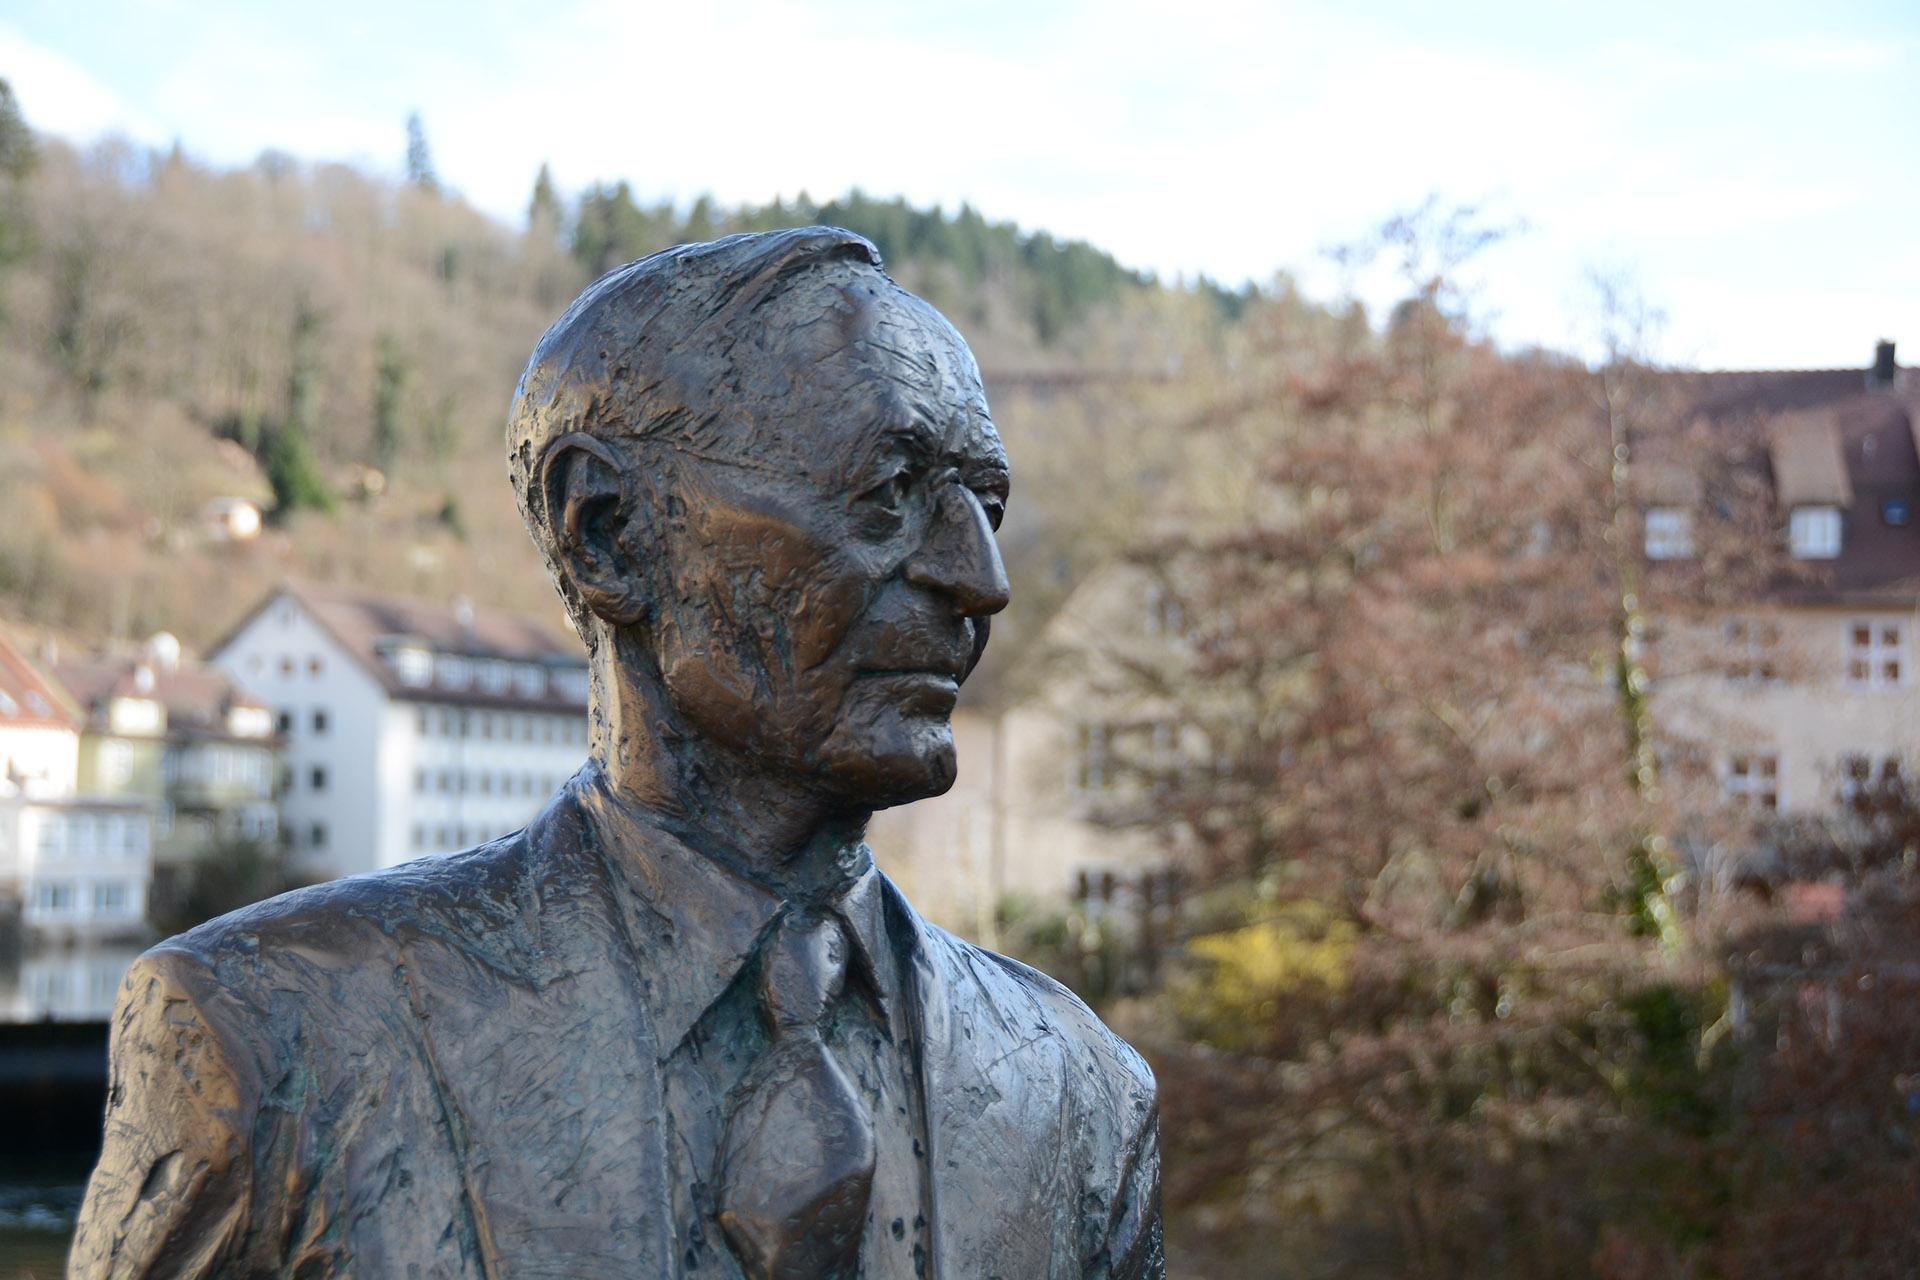 Statue Hermann Hesses in Calw